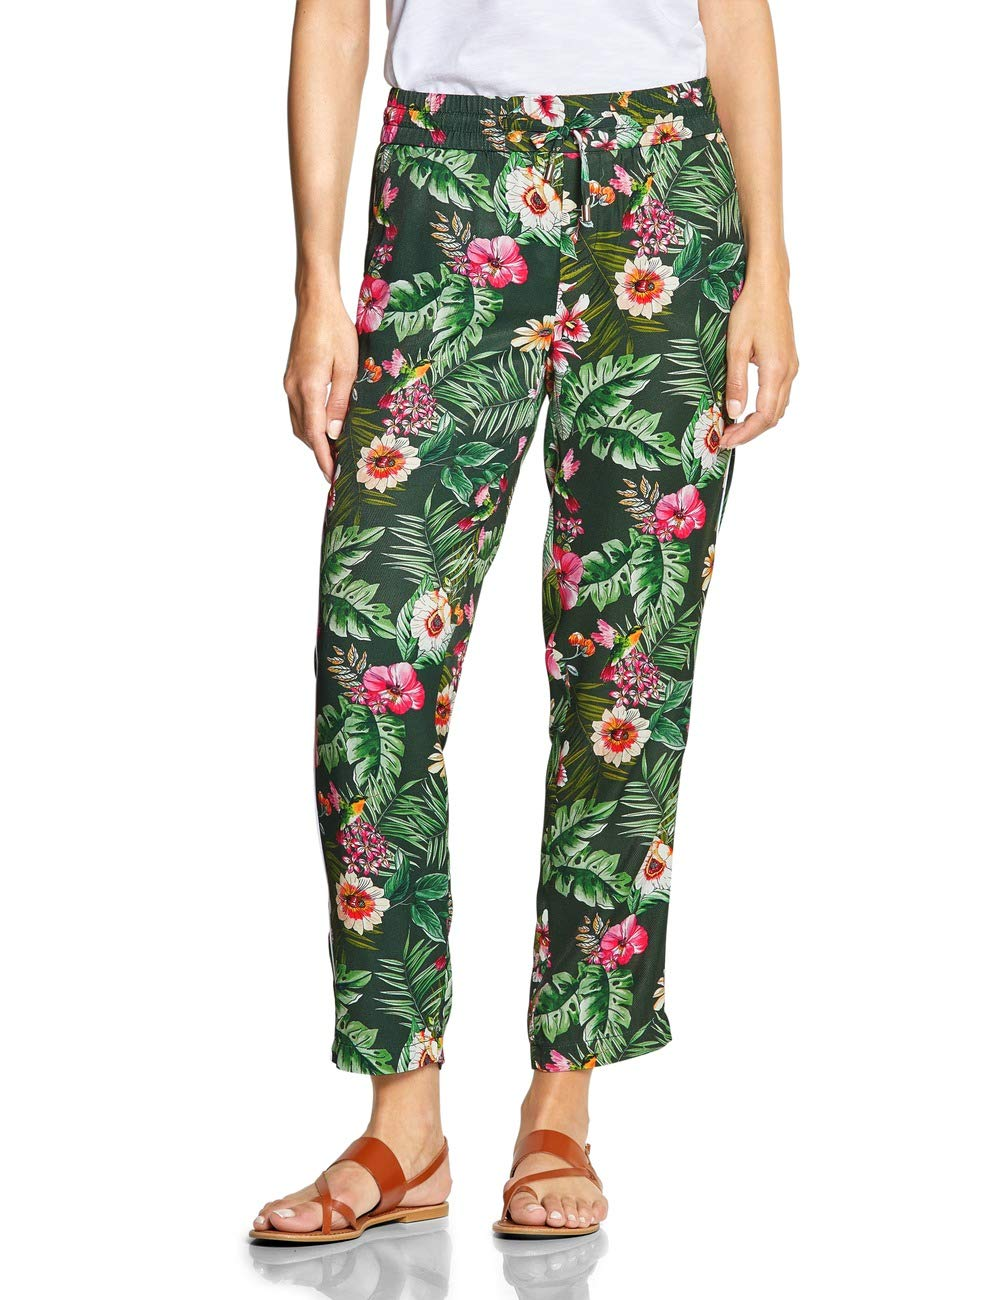 3134842 PantalonMulticolorechilled One Bonny Fabricant42Femme Green l26taille 372275 Street Yvgyf6b7